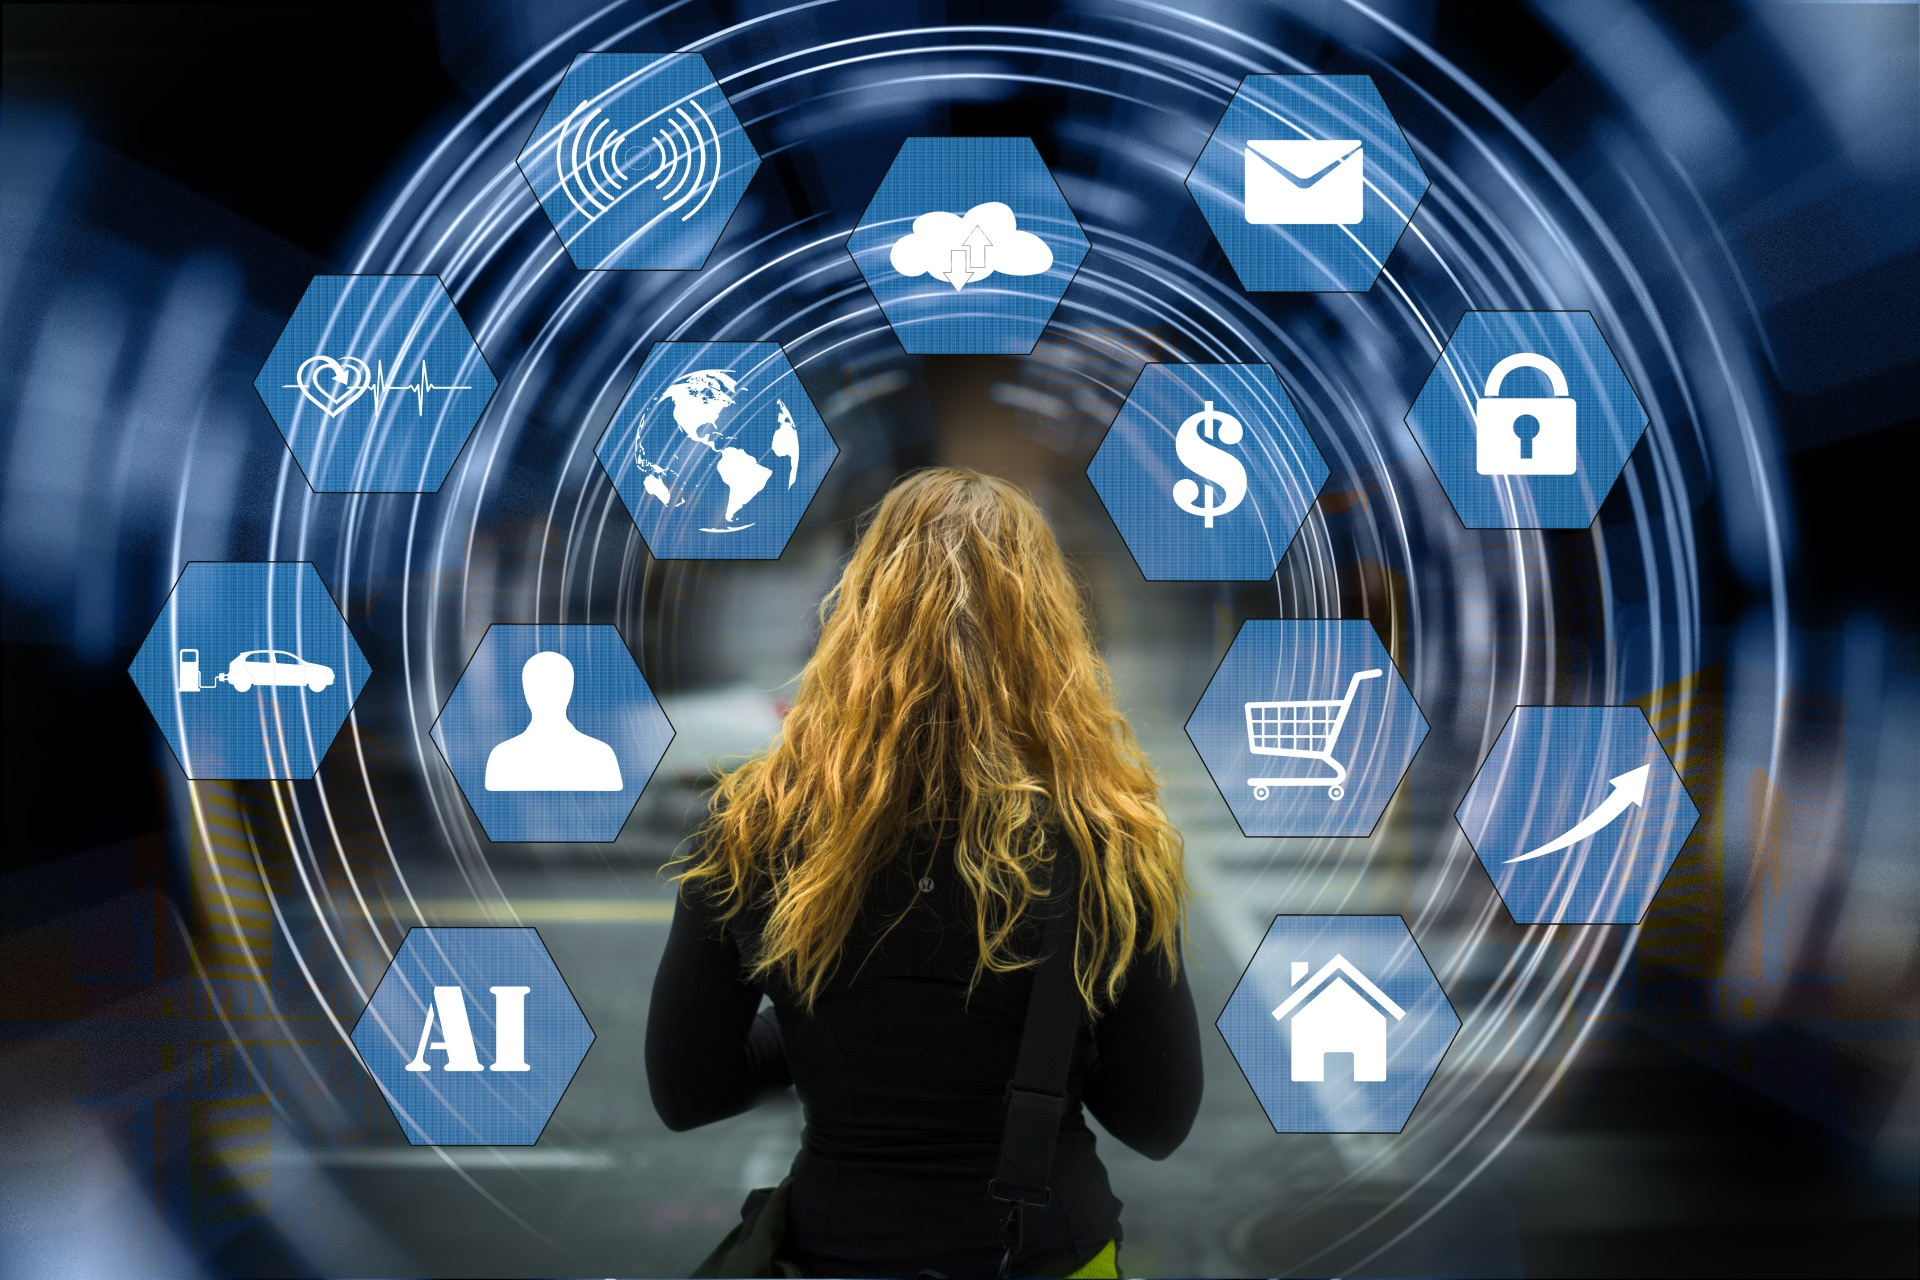 5 Reasons We're in the Midst of a Technological Golden Age - Smarterware